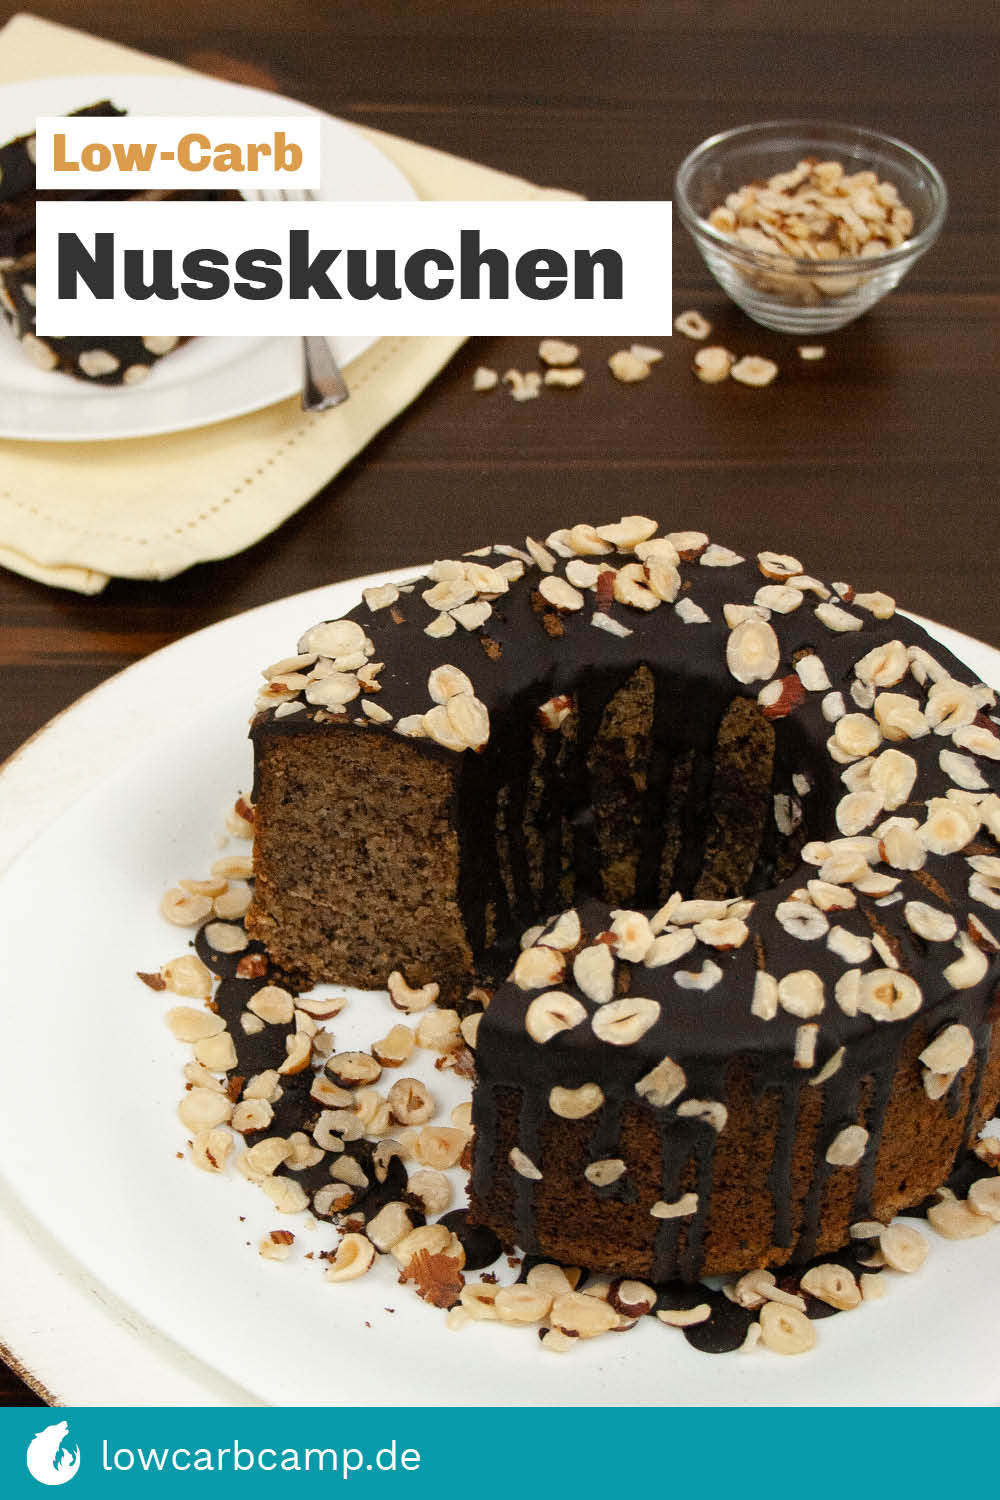 Low-Carb Nusskuchen